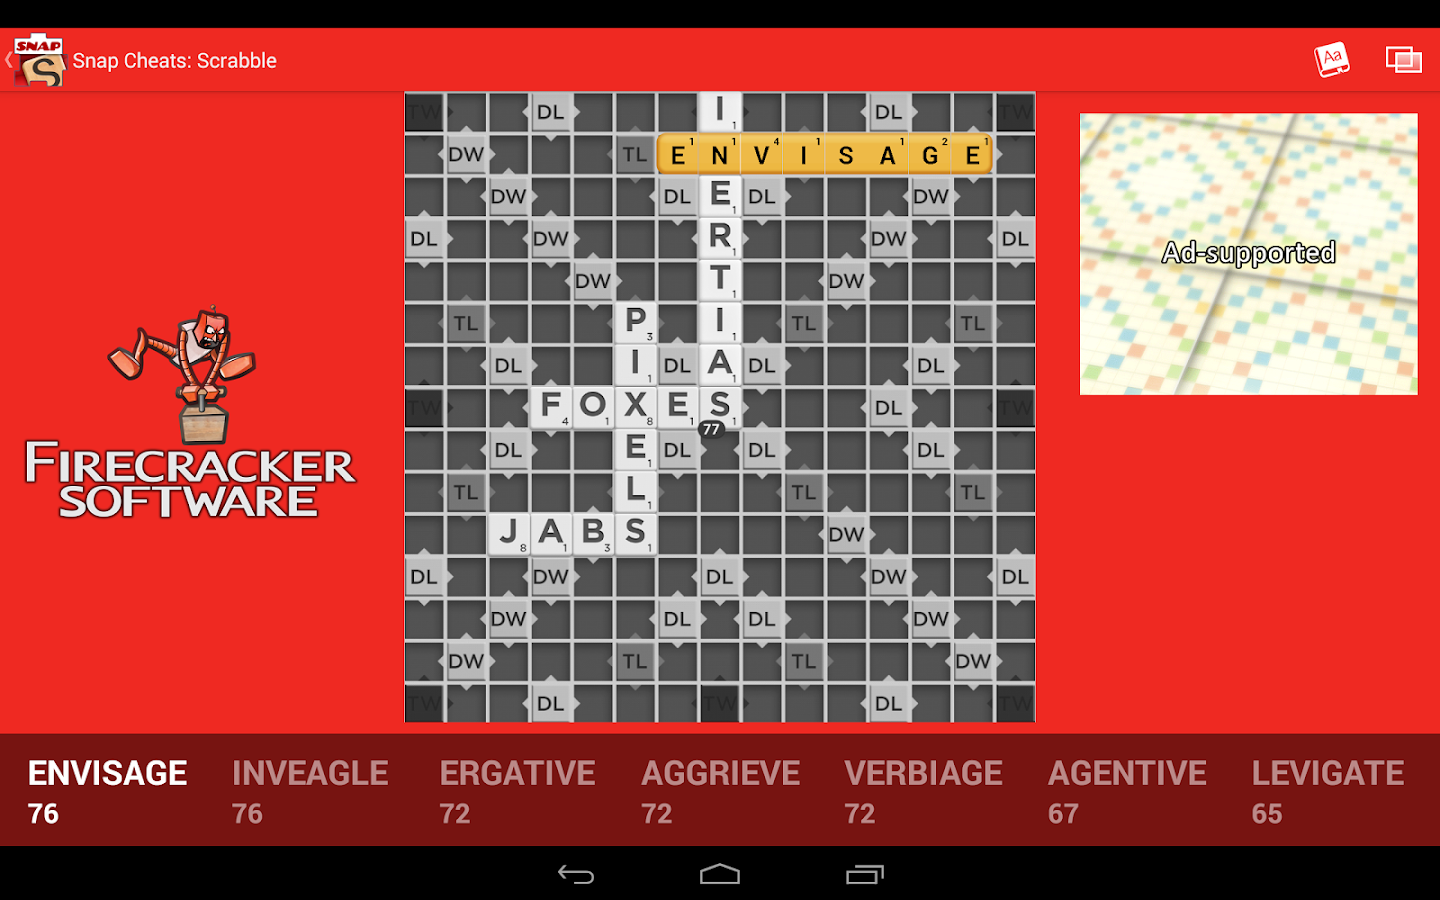 Snap Cheats: Scrabble- screenshot